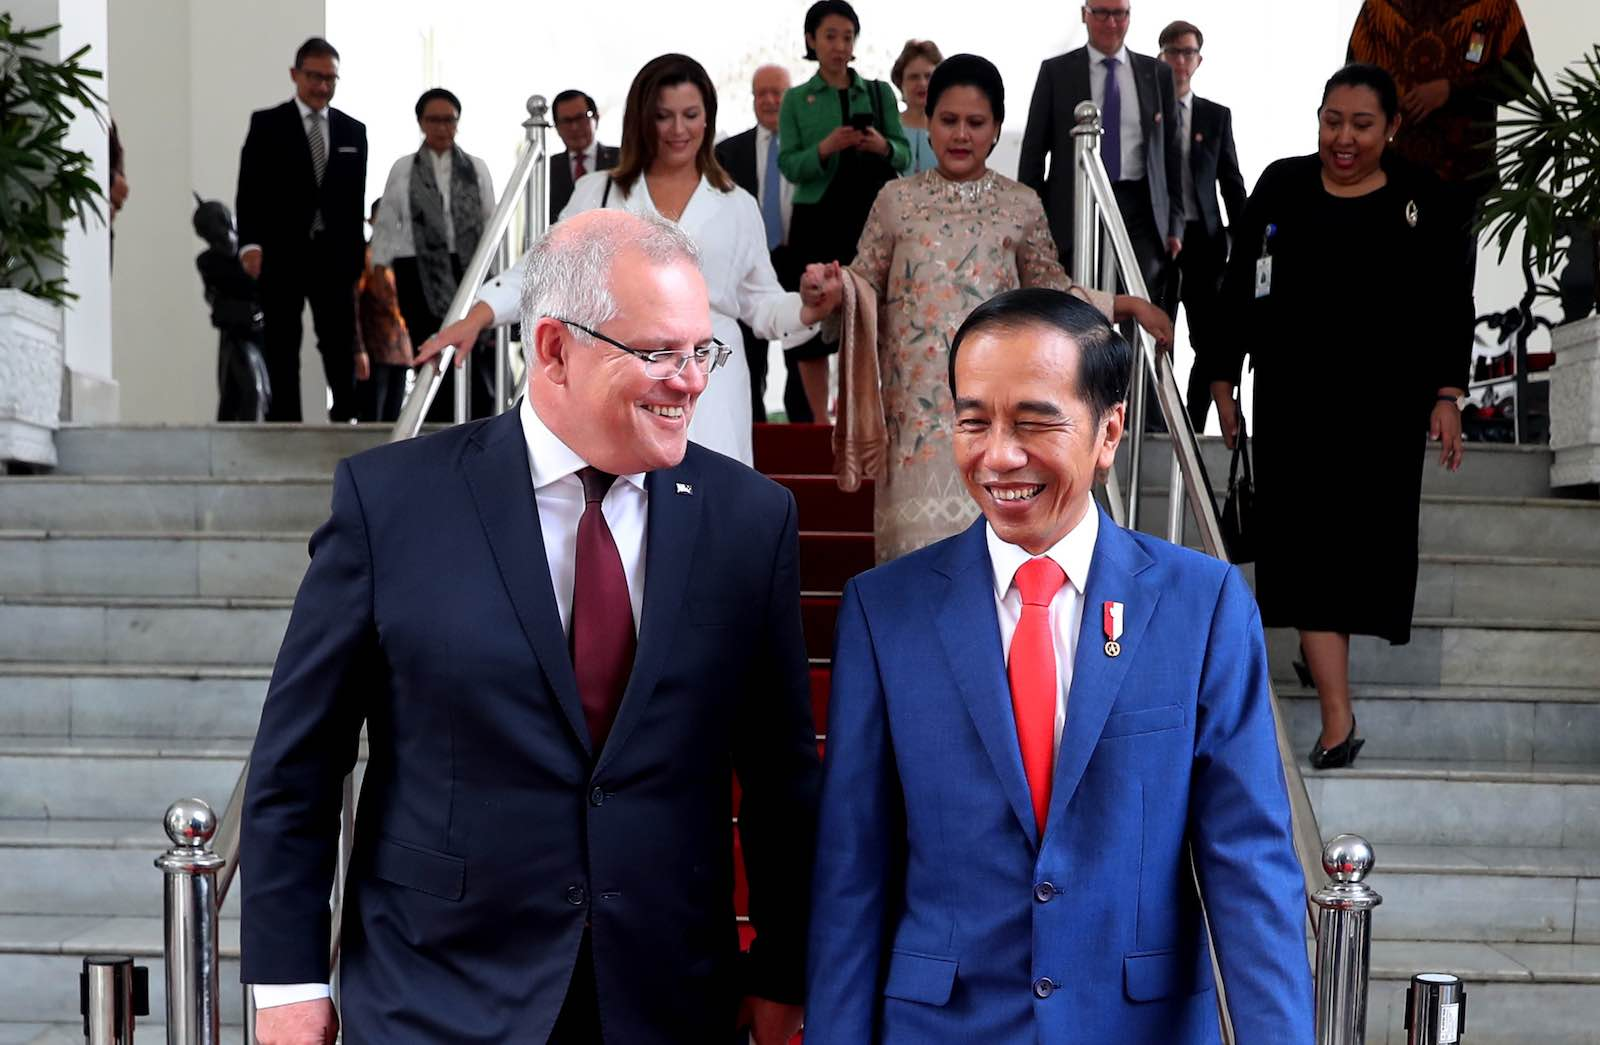 Australia's Scott Morrison and Indonesia's Joko Widodo in October 2019 (Photo: Australian Embassy Jakarta/Flickr)